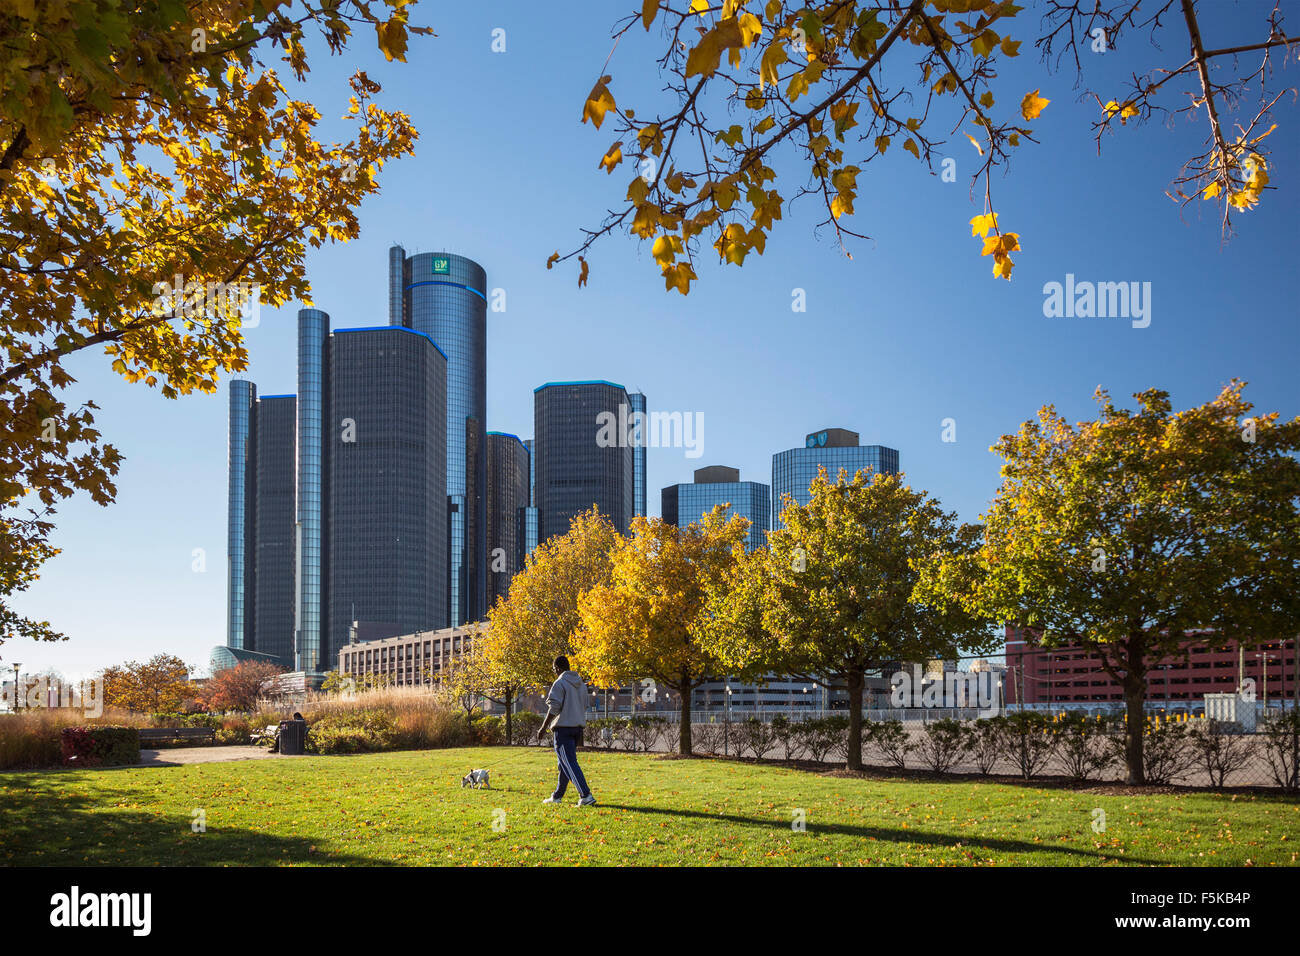 Detroit, Michigan - A man walks his dog near the Renaissance Center, which houses the General Motors headquarters. - Stock Image